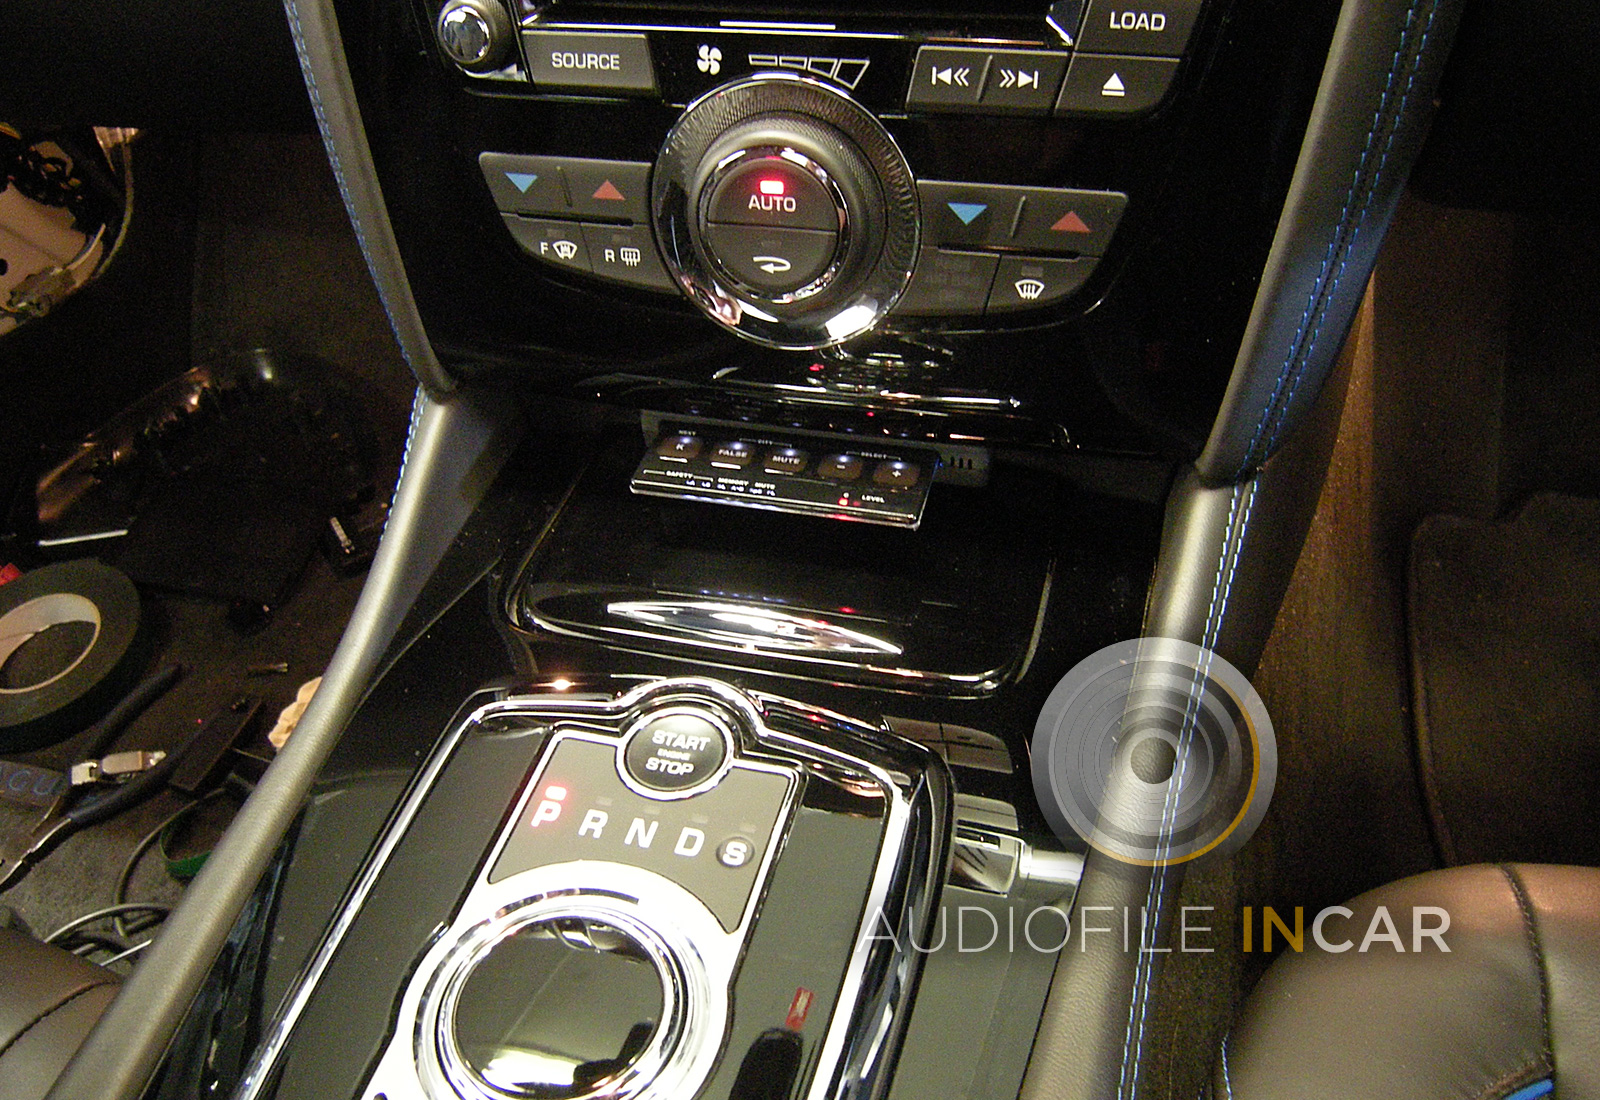 Another example of a Stinger GPS Card installation, this time it sits neatly at the base of the dash in a Jaguar XK RS, This car was also fitted with no less than three separate laser analyser / diffusers for driver safety and peace of mind.